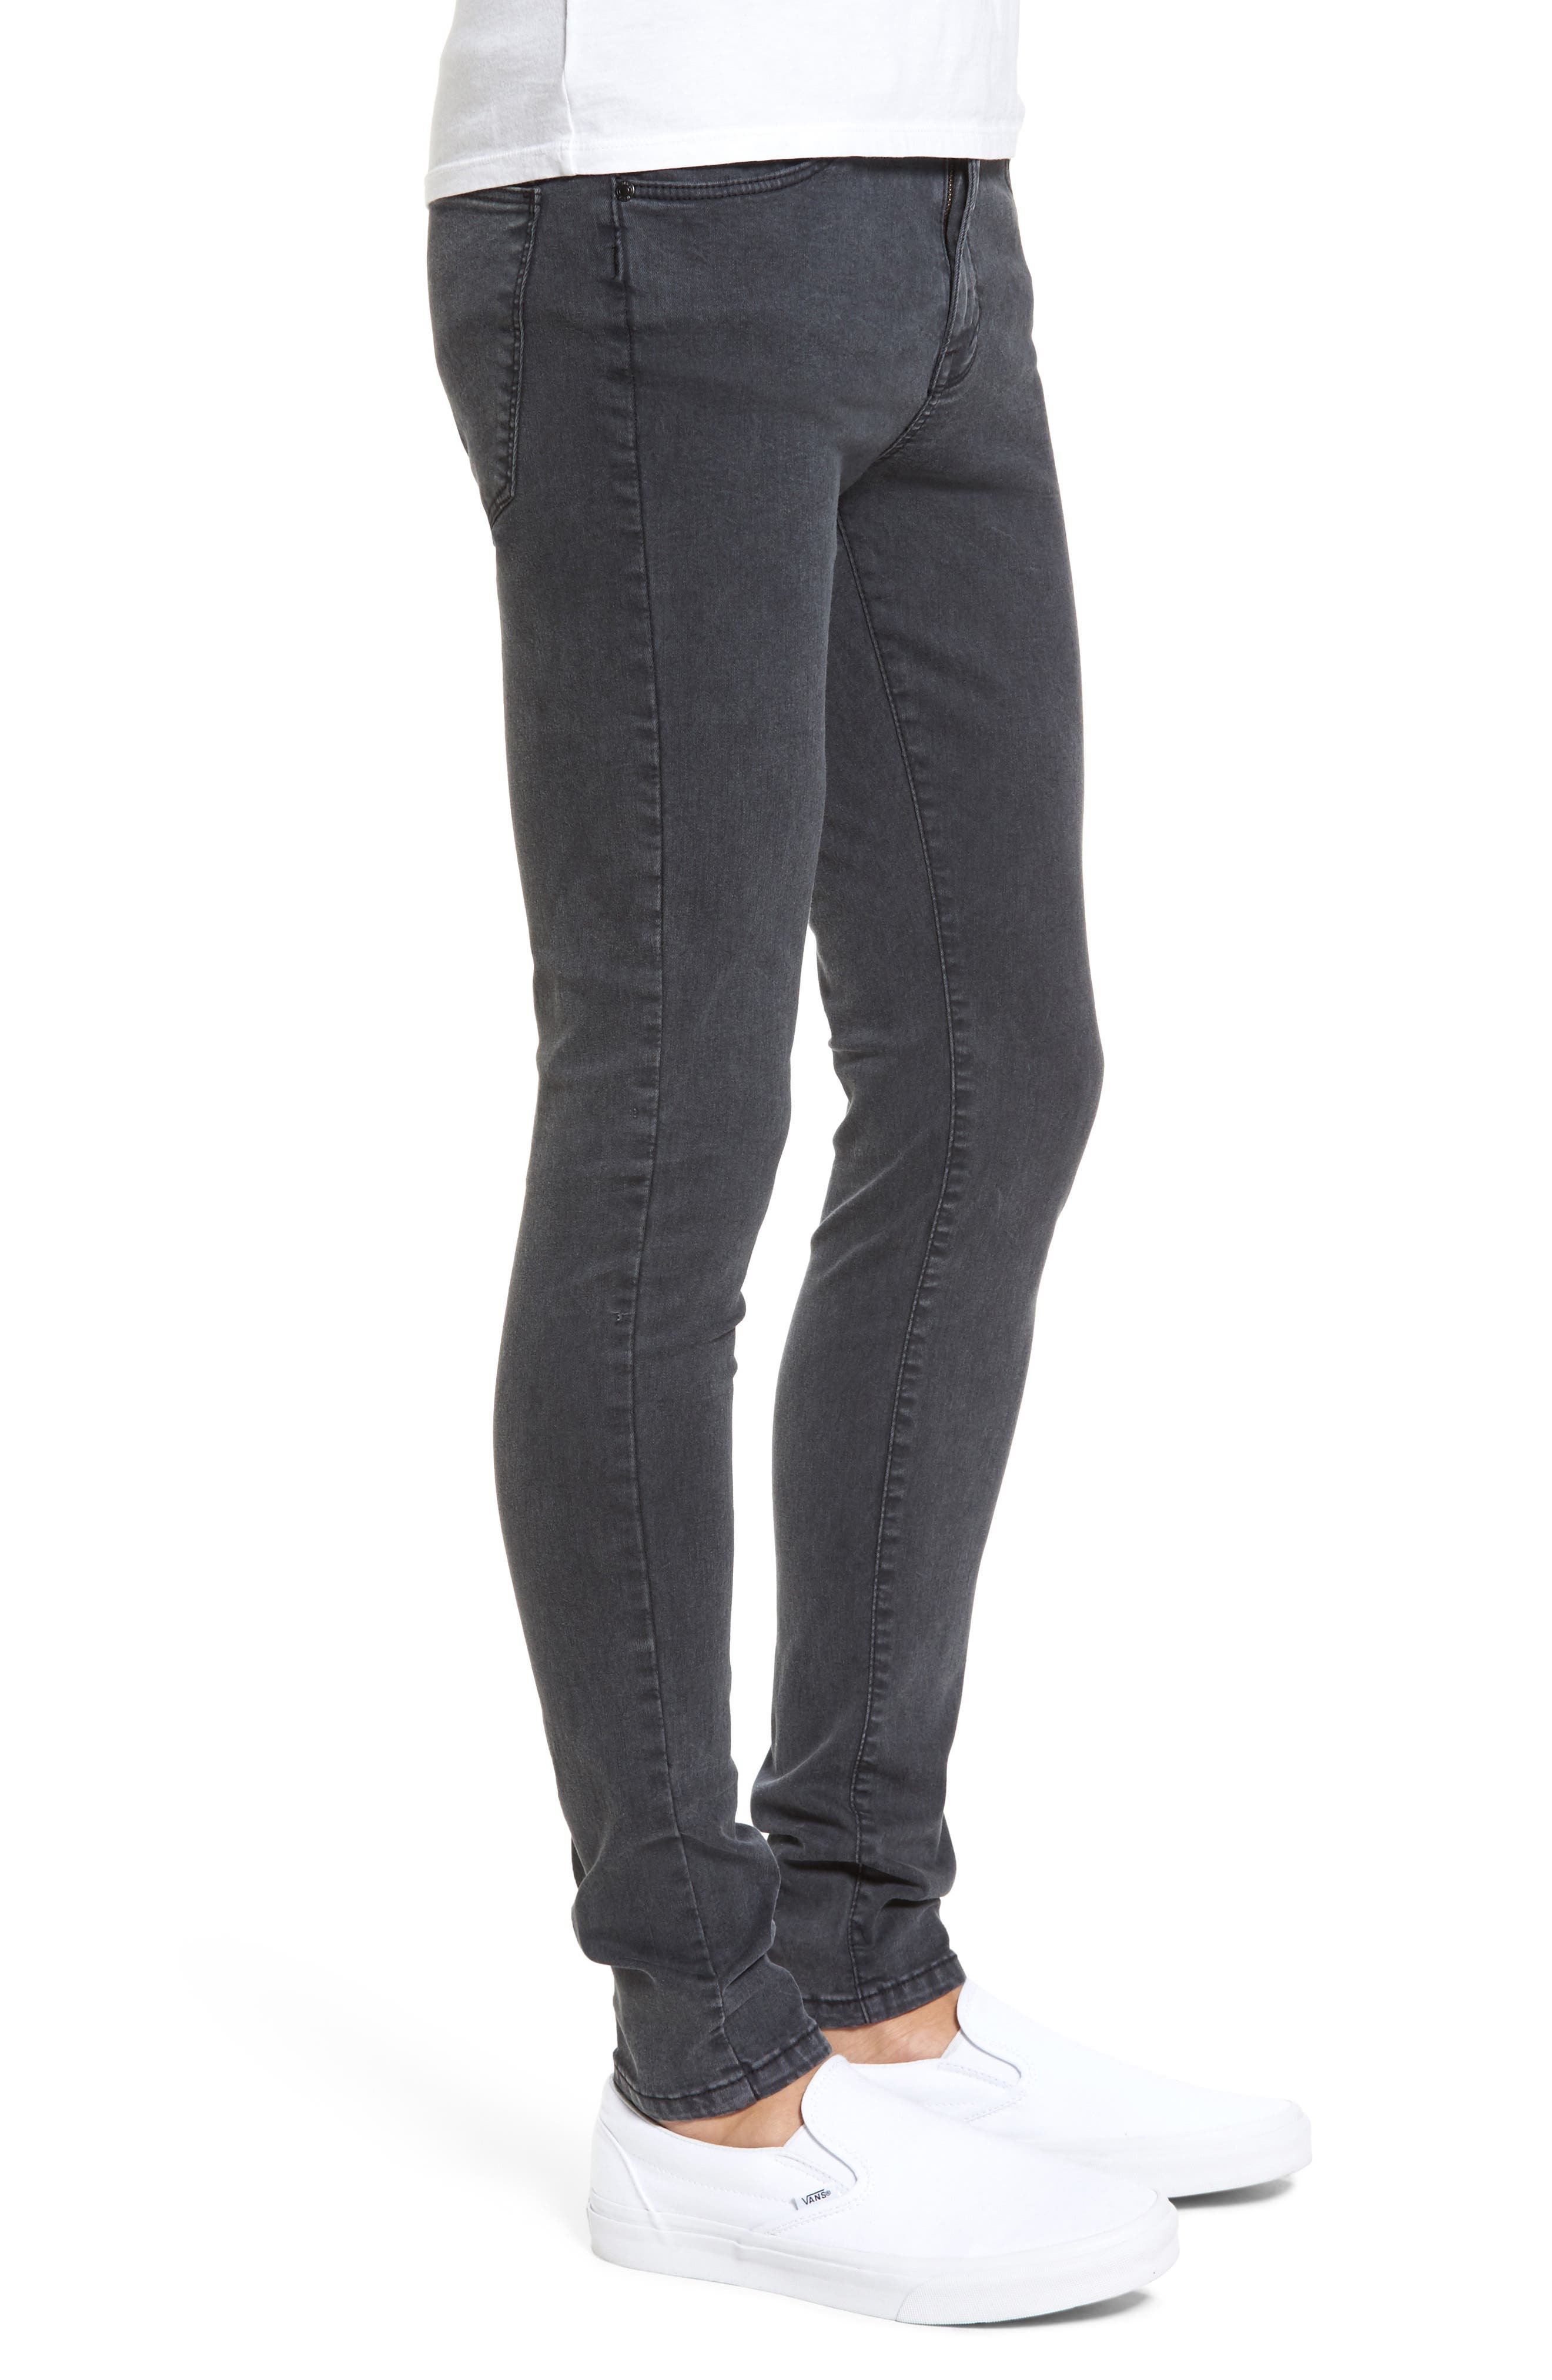 Leroy Slim Fit Jeans,                             Alternate thumbnail 3, color,                             Grey Lush